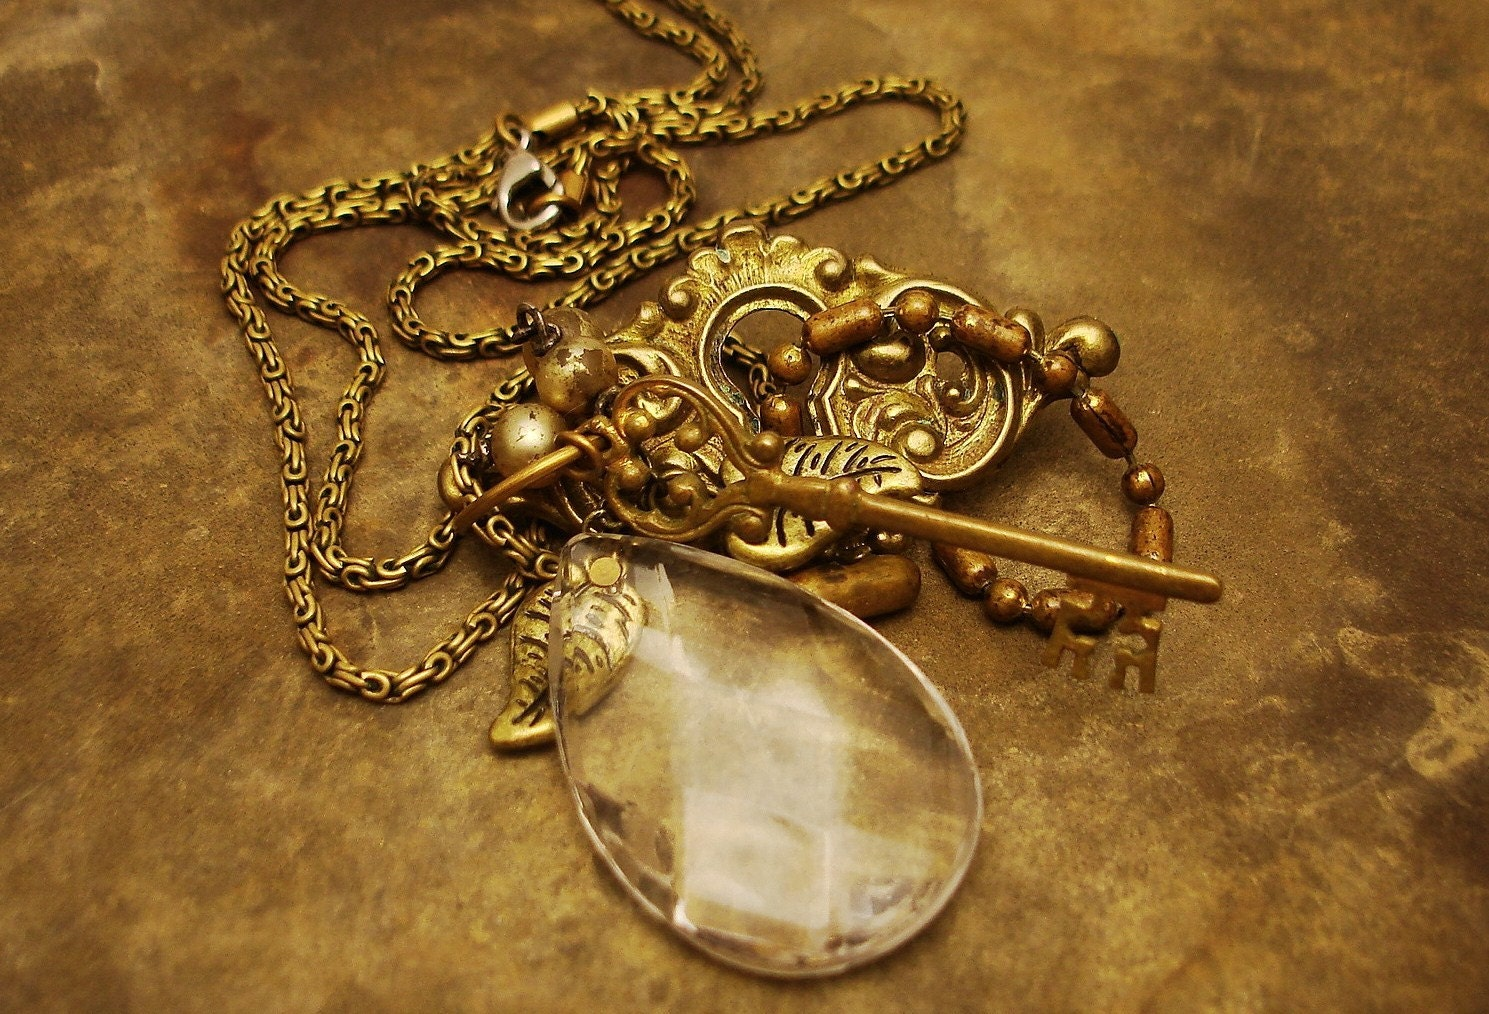 Crystal Prism Key Found Objects Necklace